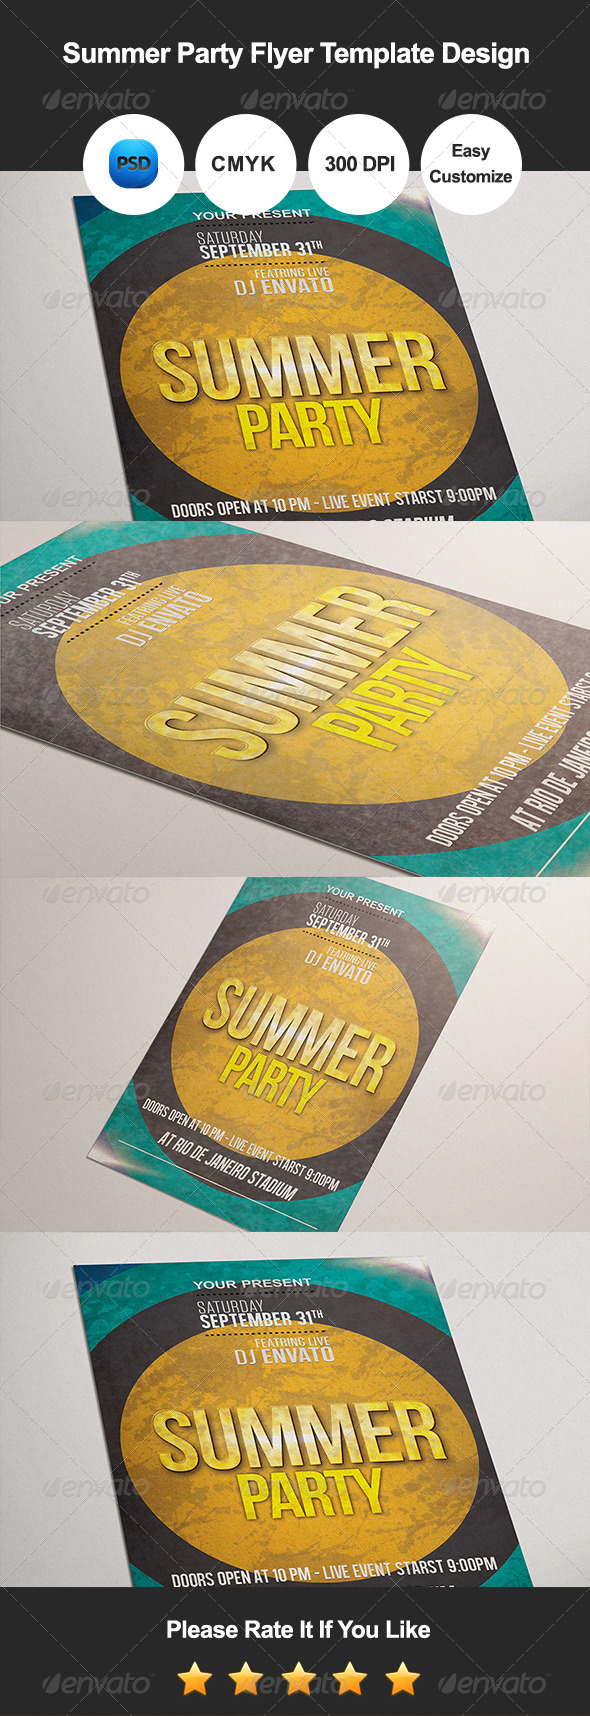 GraphicRiver Summer Party Flyer Template Design 8197347